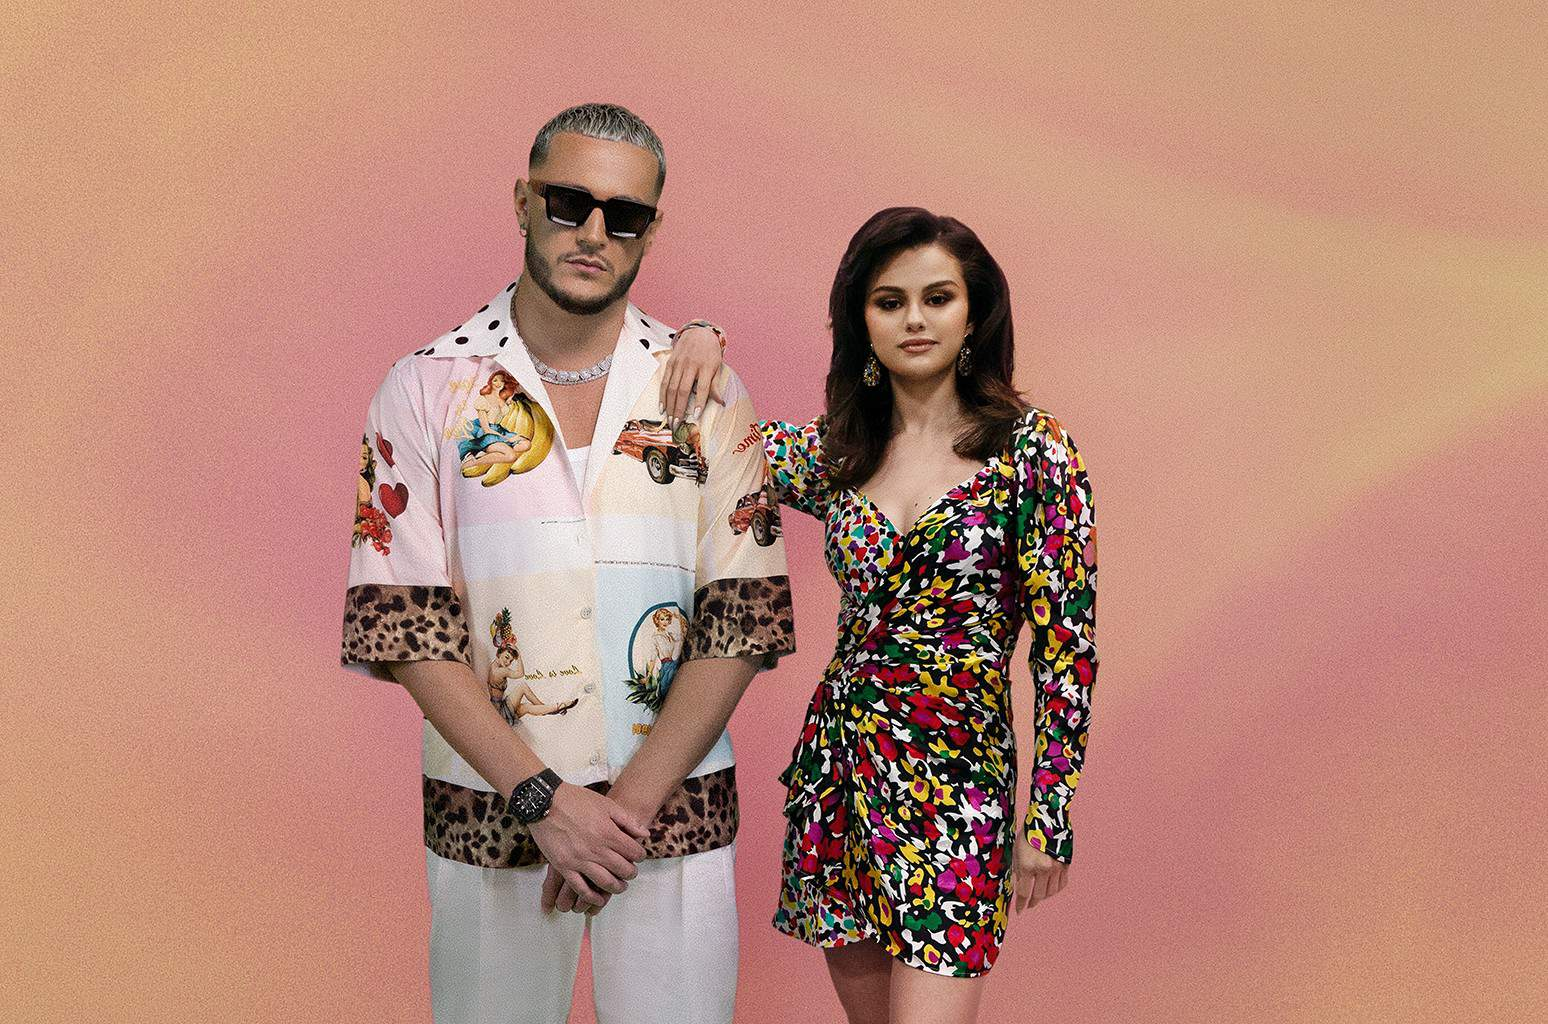 DJ Snake and Selena Gomez